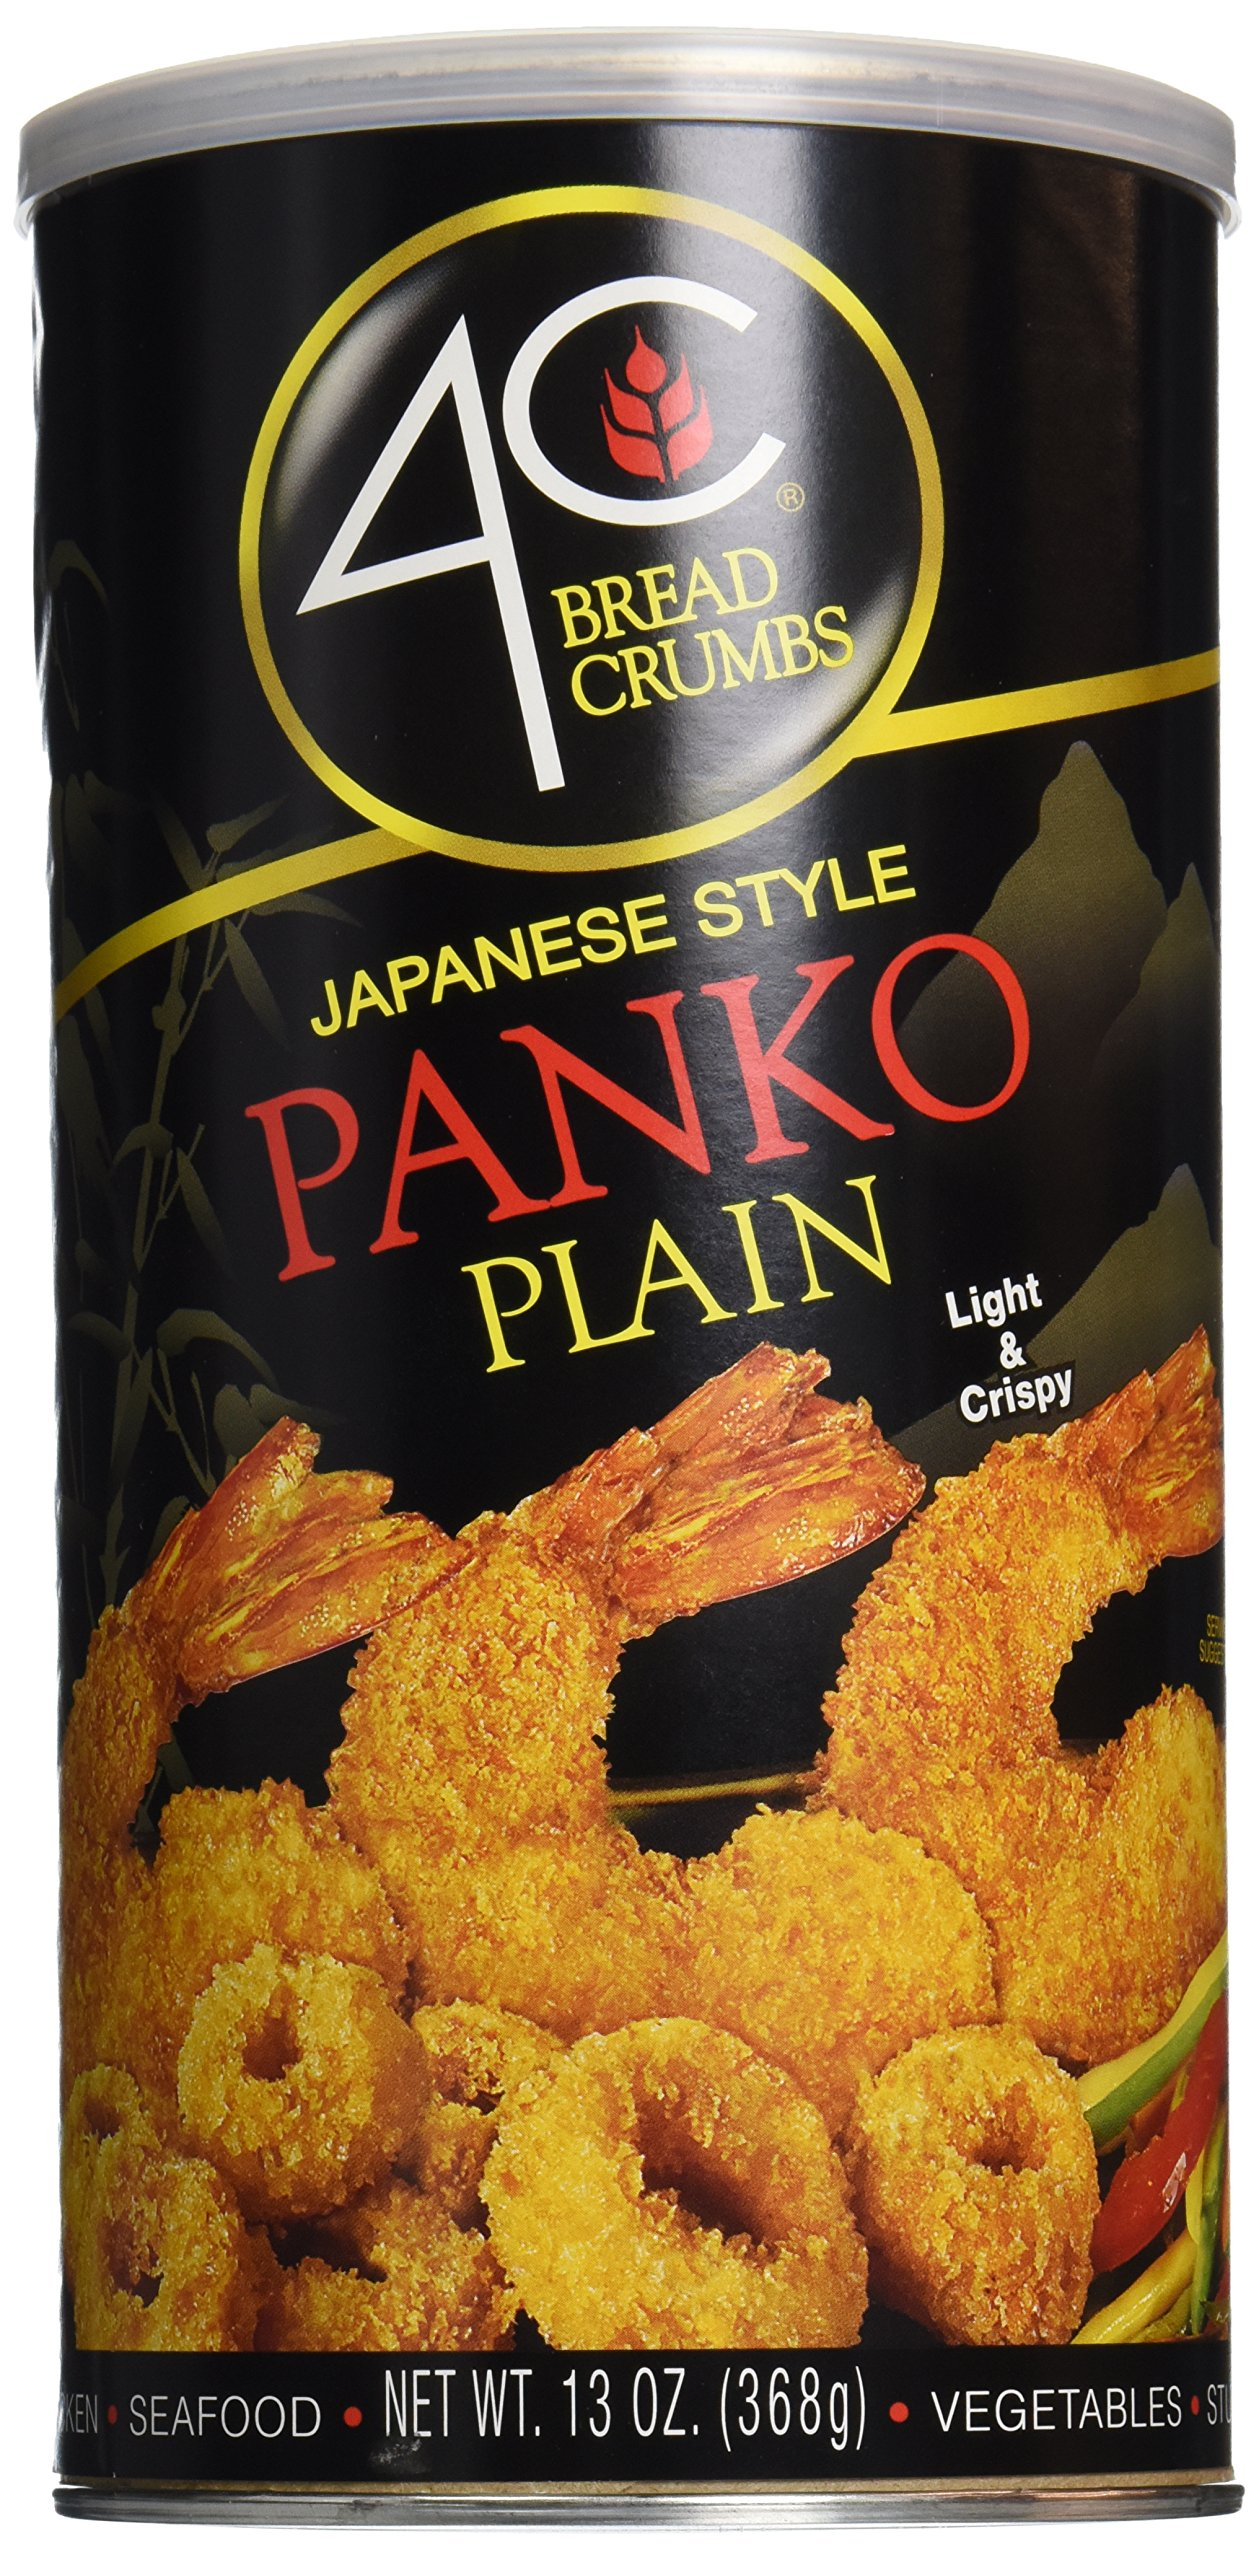 4C Panko Bread Crumbs Plain, 13 oz